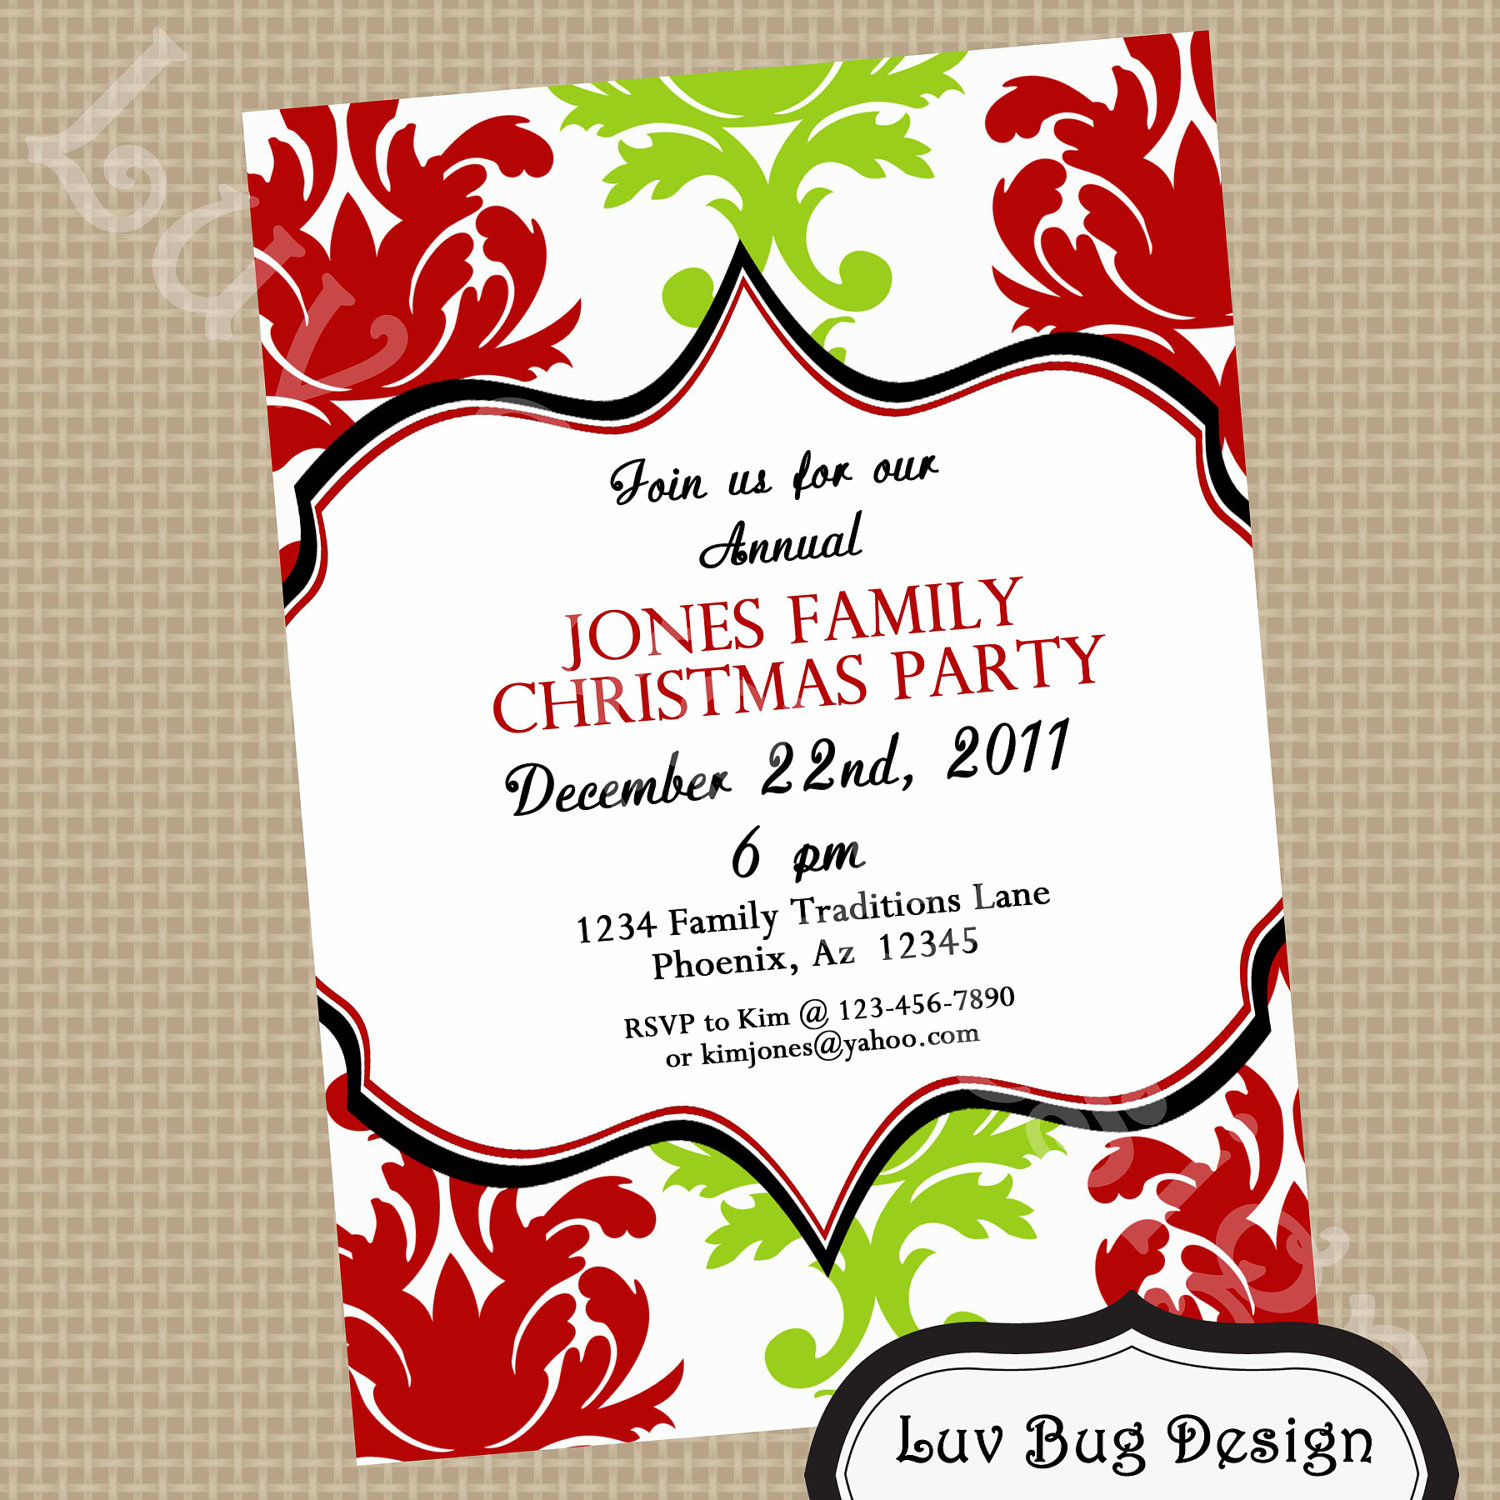 Holiday Party Invite Template is adorable invitation layout